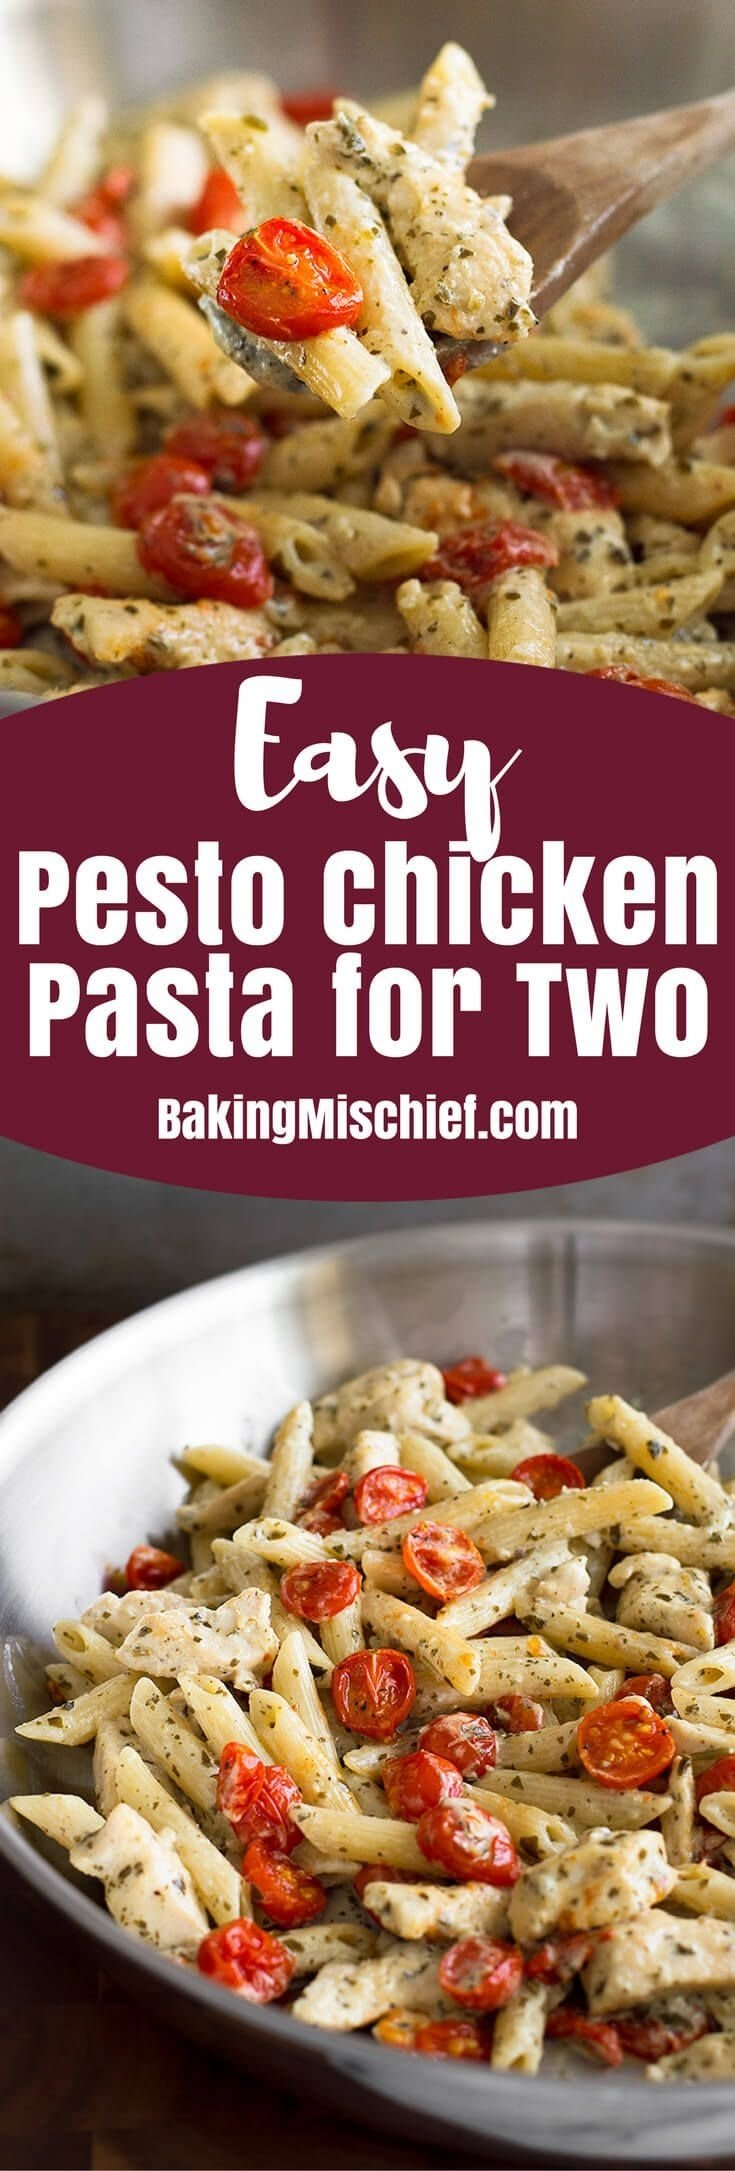 10 Cute Dinner Ideas For Two Cheap this easy pesto chicken pasta for two is a perfect easy pasta dinner 1 2020